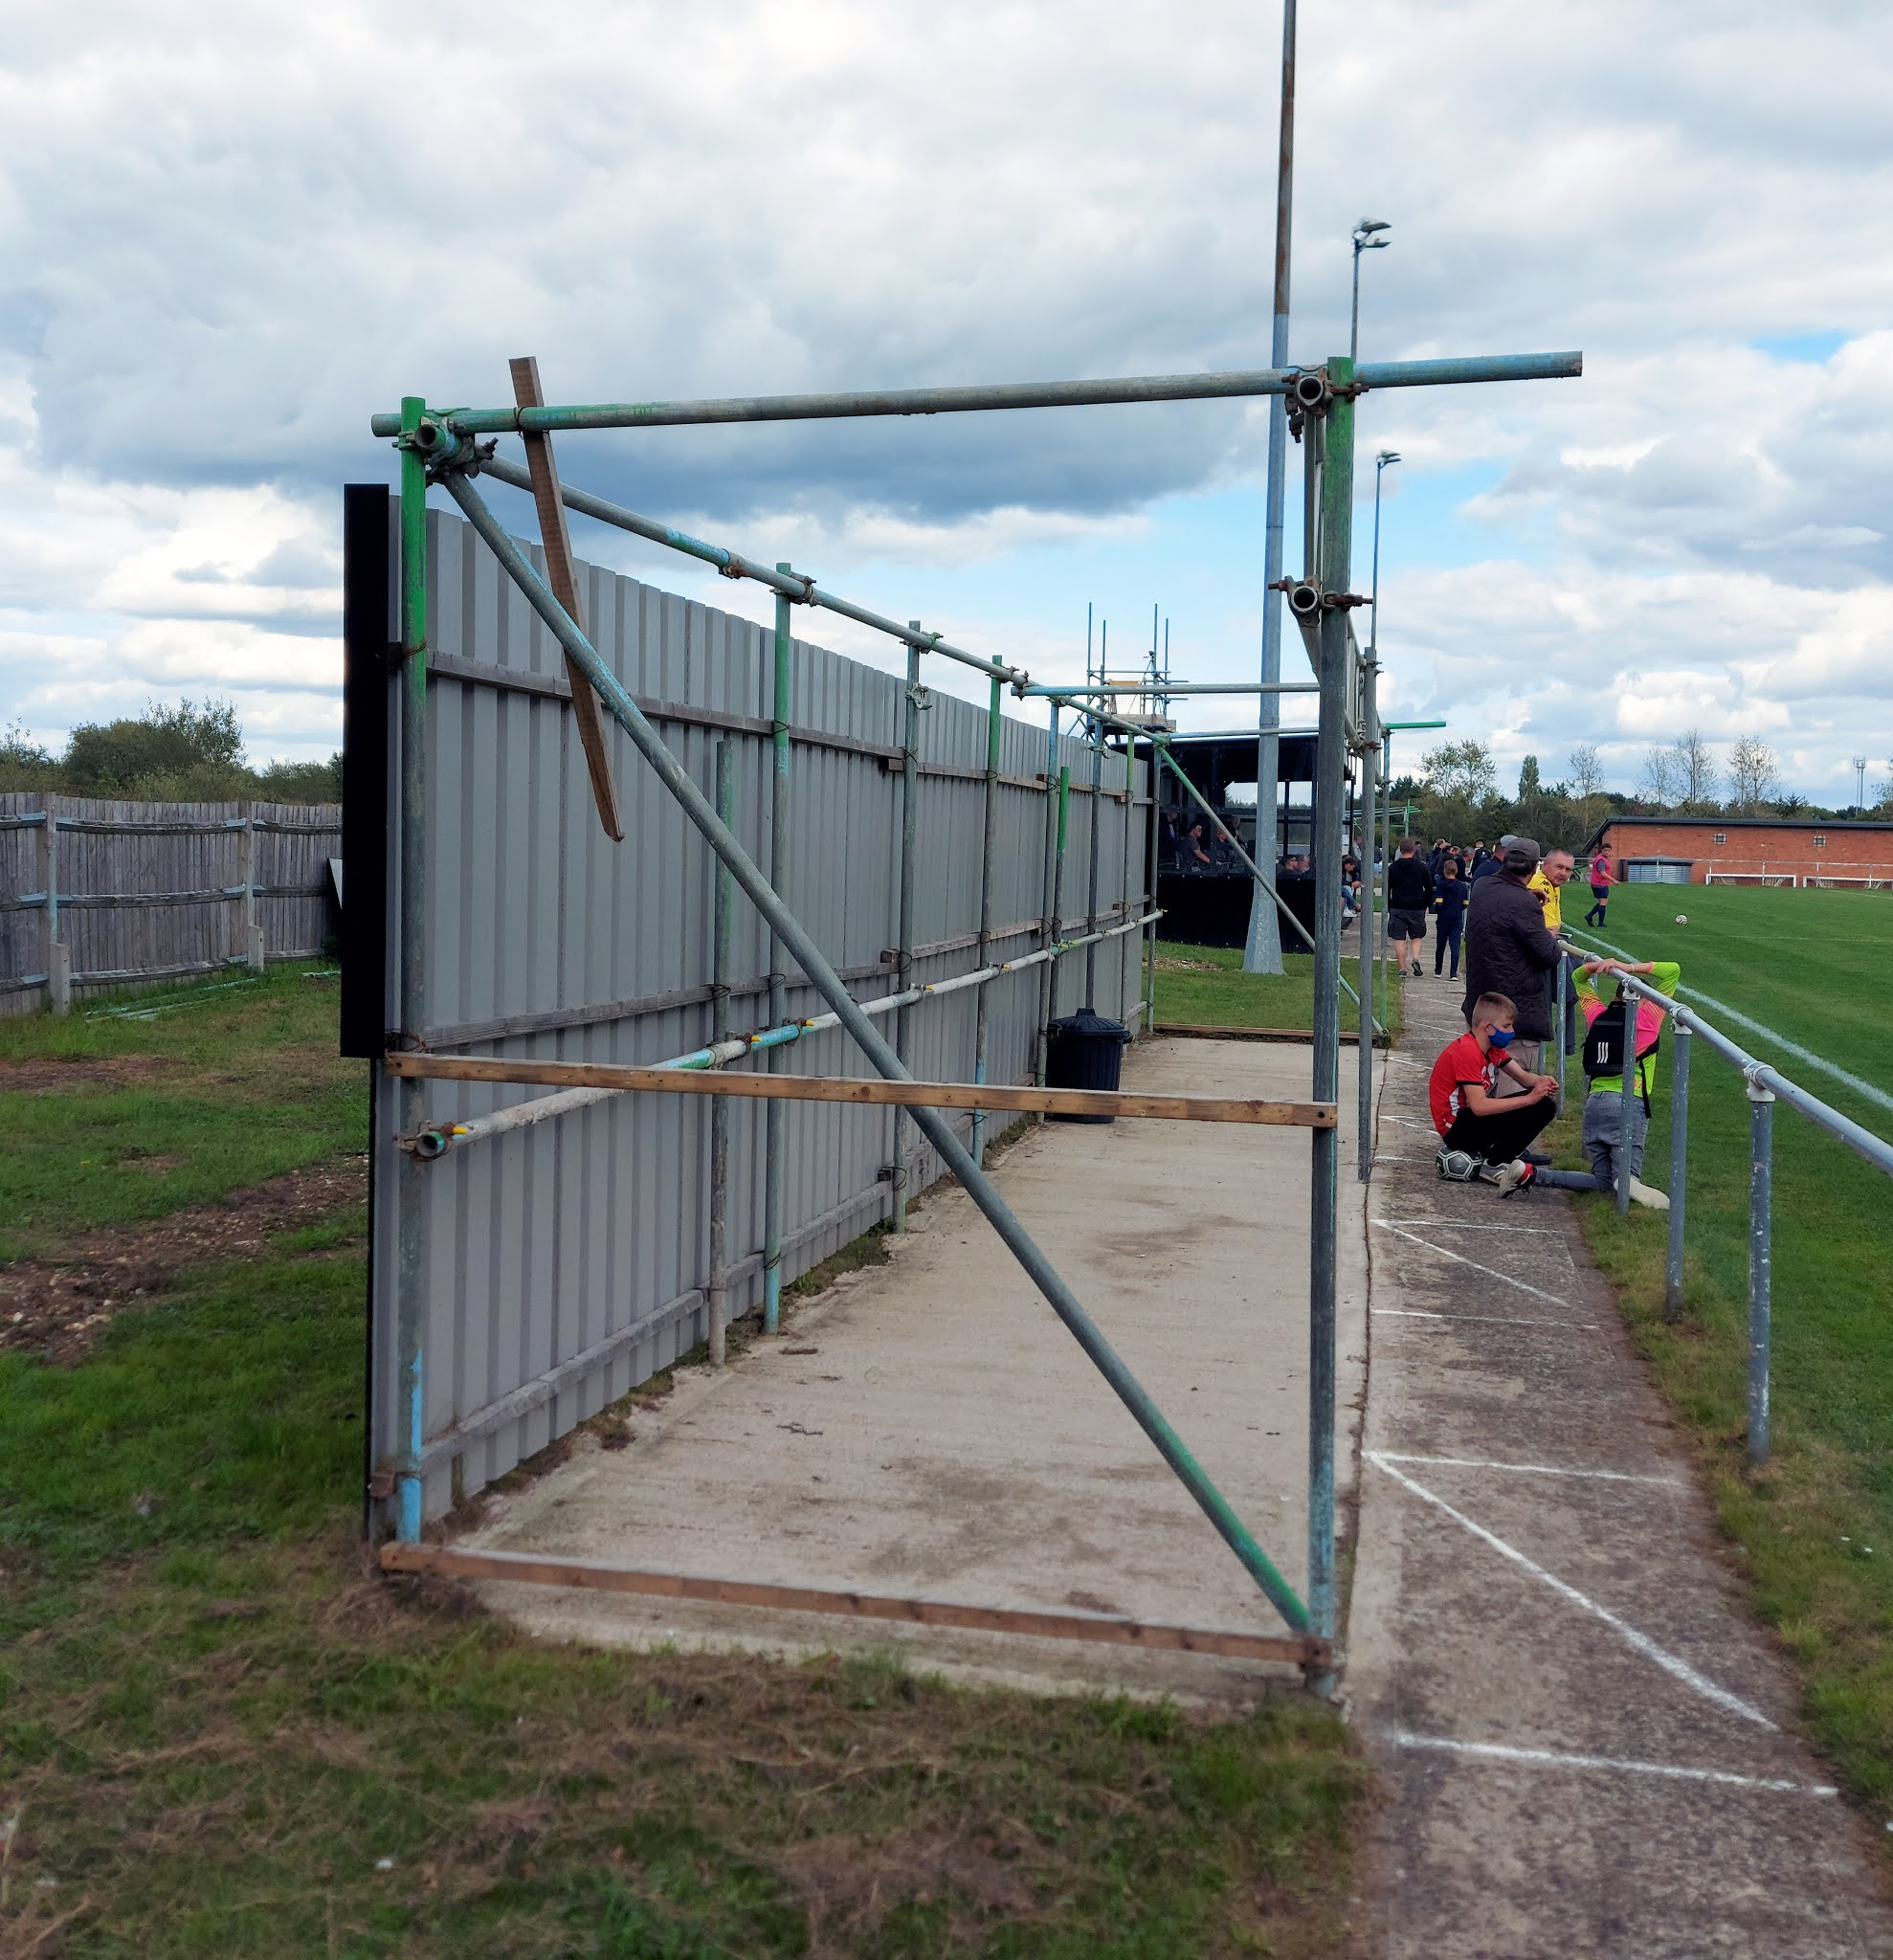 Spectator standing area at Barlow's Park